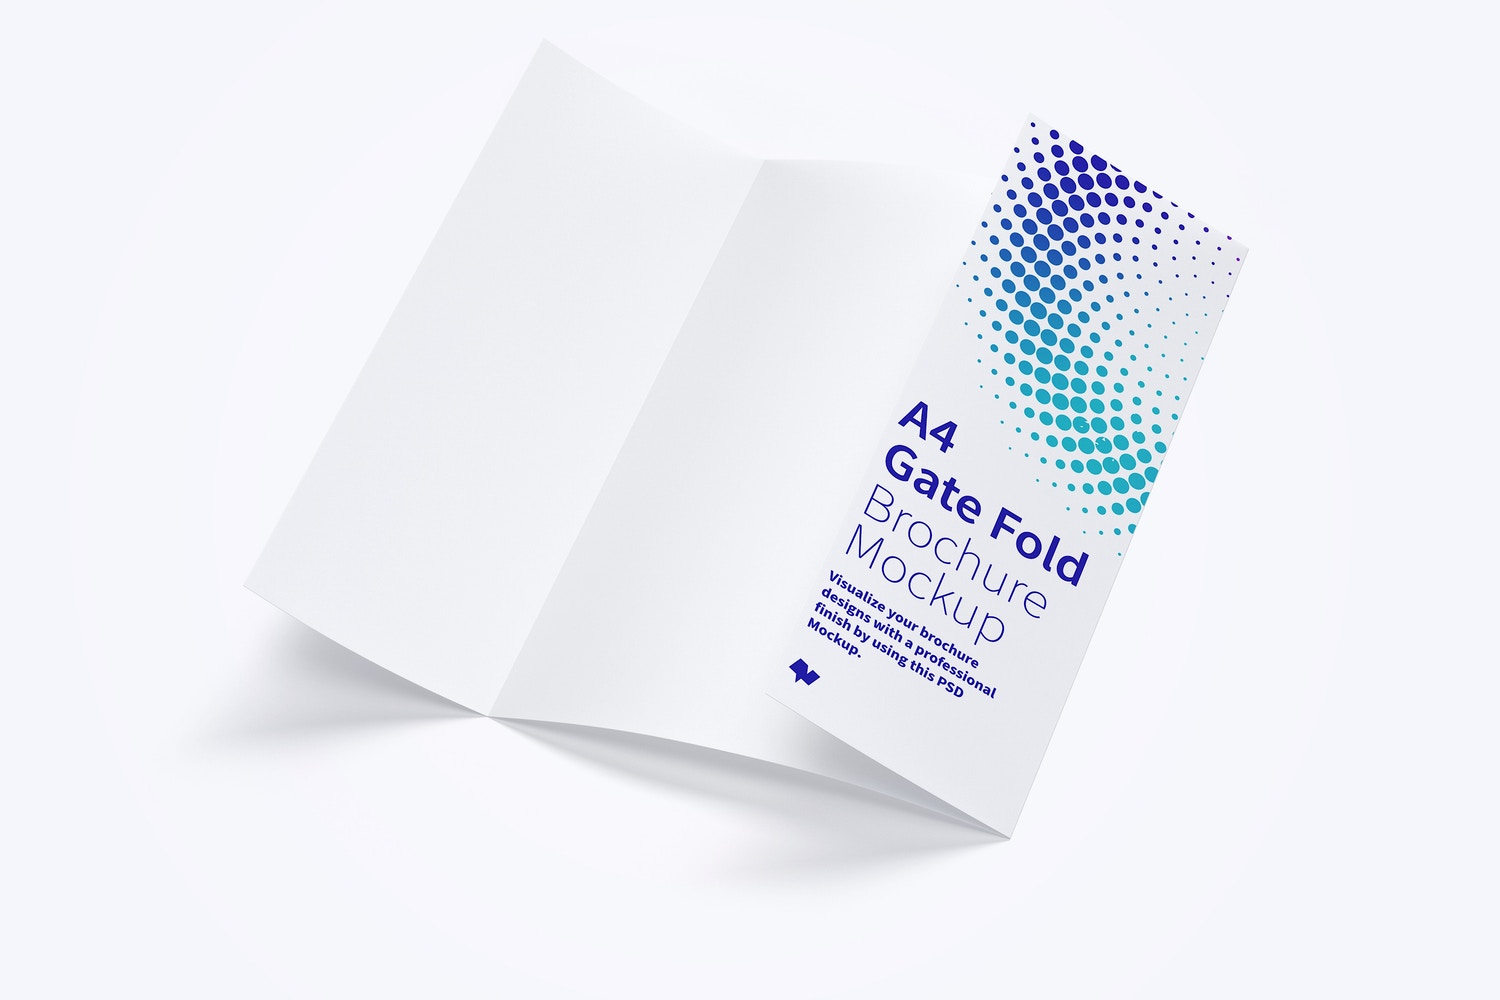 A4 Gate Fold Brochure Mockup 02 by Original Mockups on Original Mockups